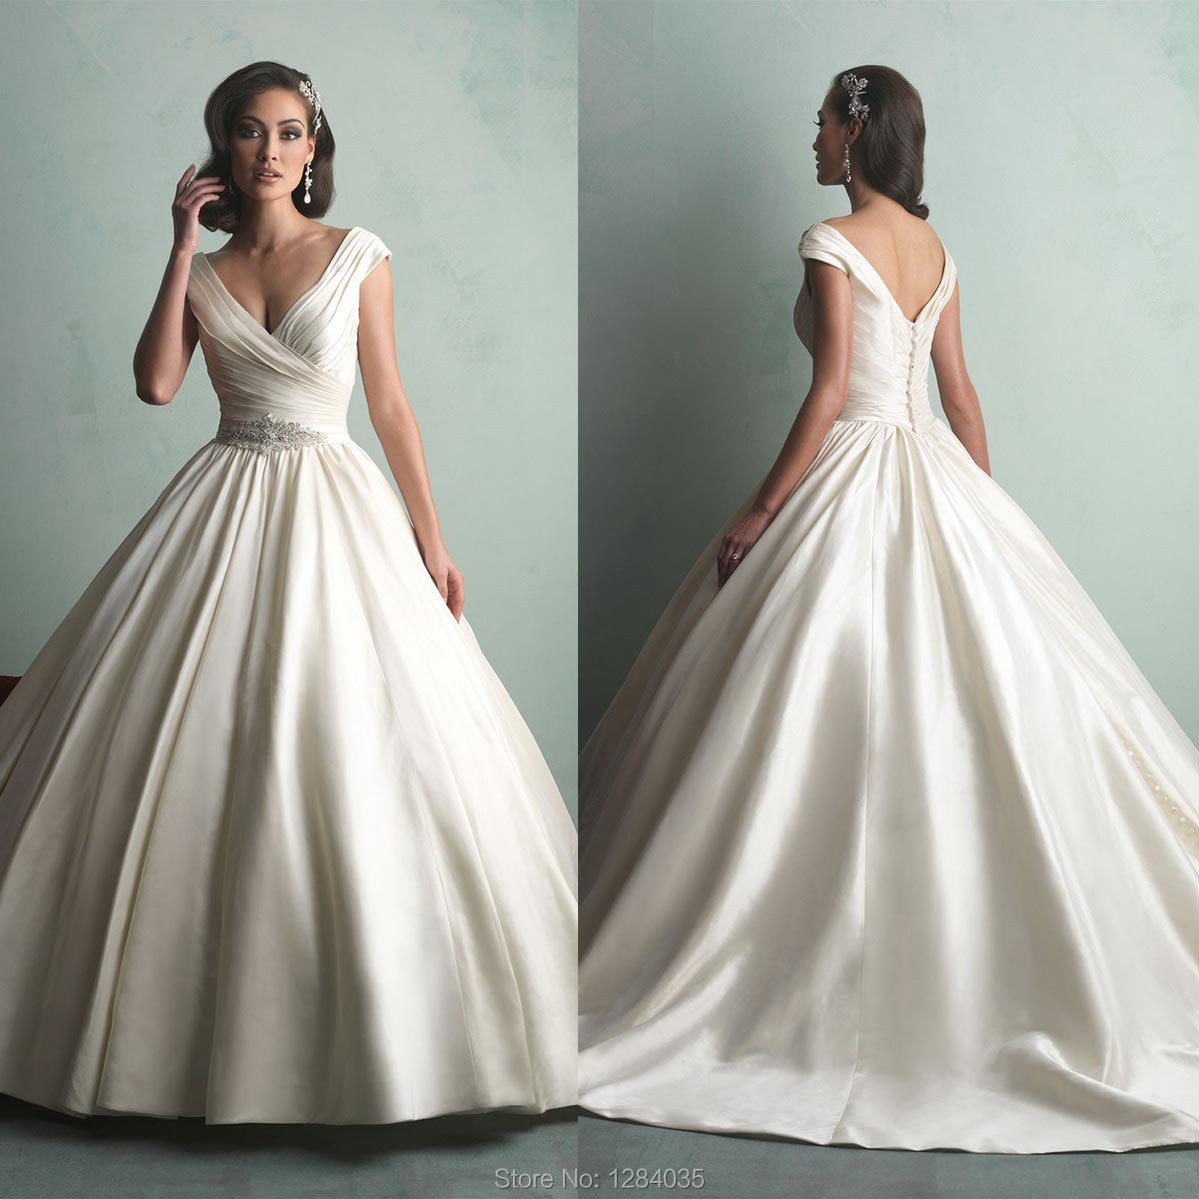 Sexy custom satin wedding dress 9155 cinderella ball gown for Back necklace for wedding dress